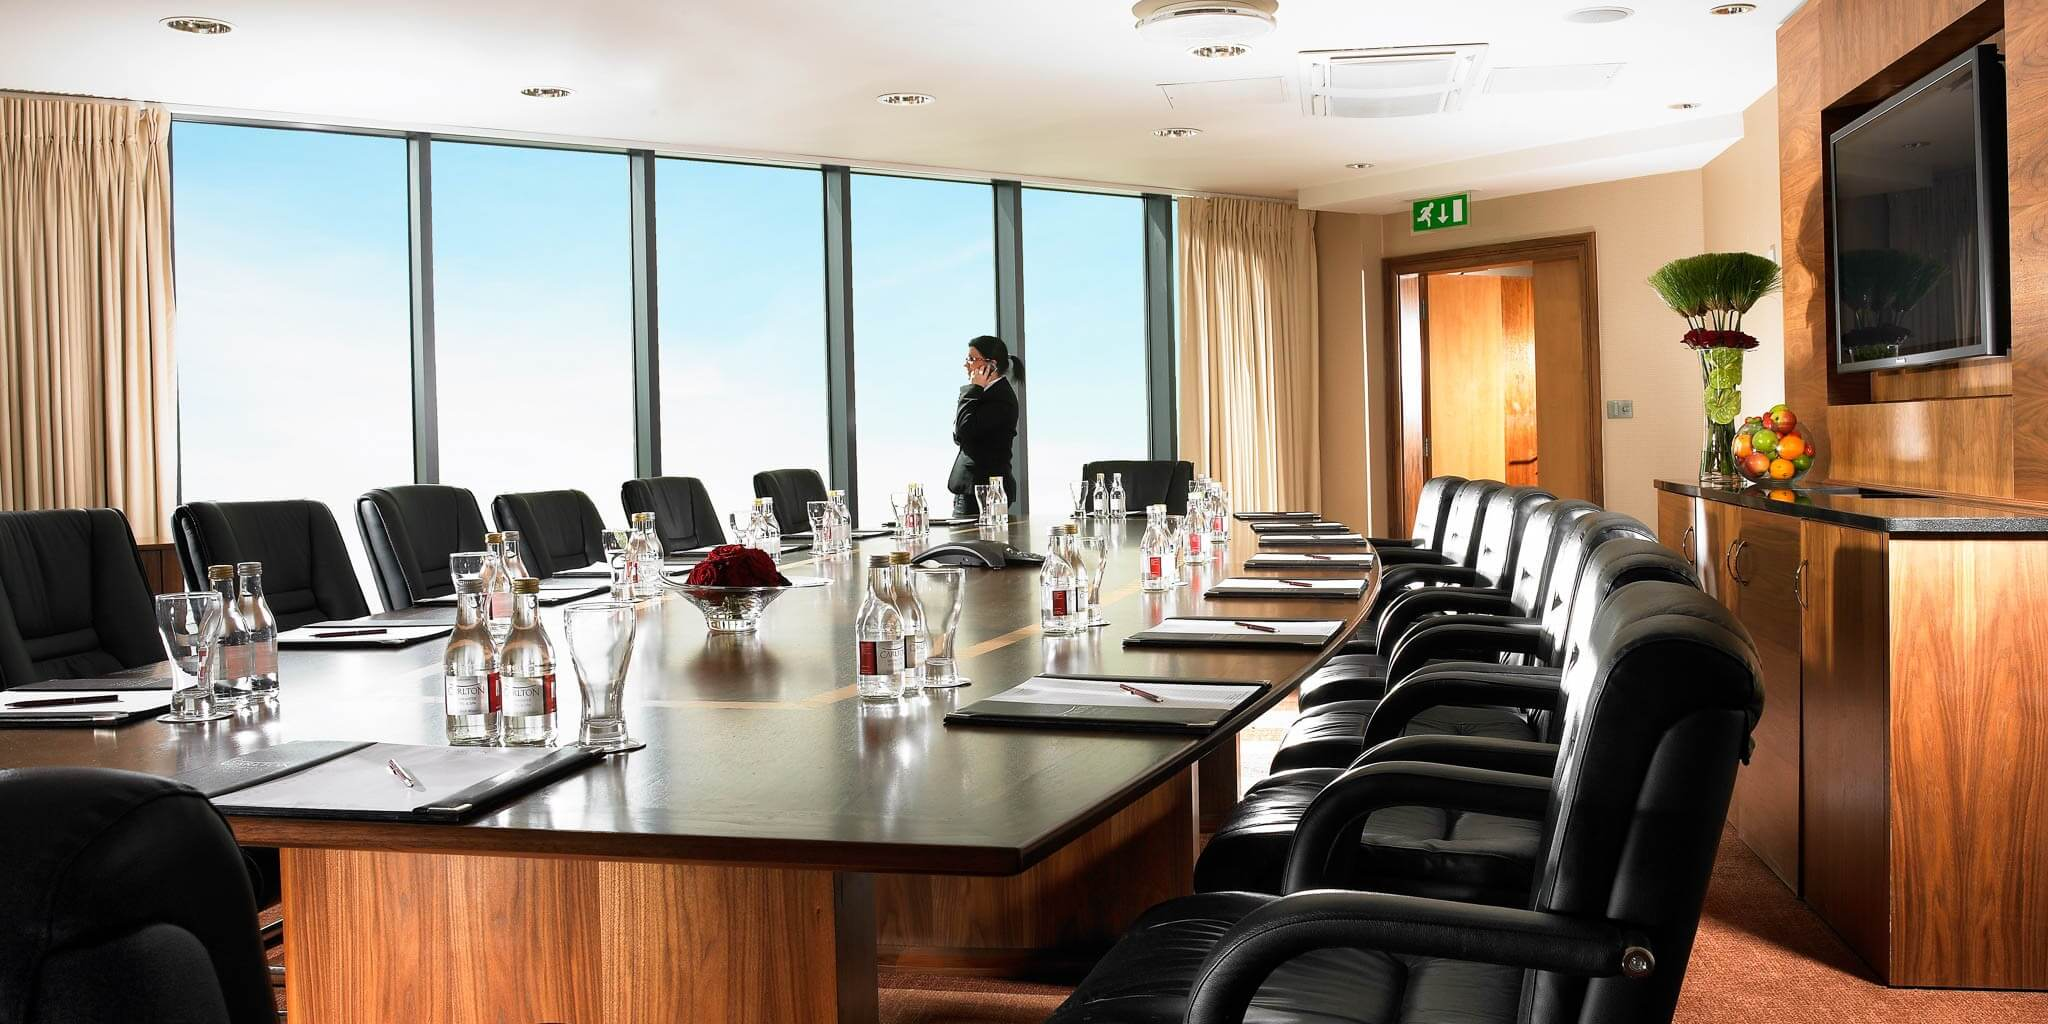 Things You Need To Look For In A Rental Meeting Room - Alps Road Tour